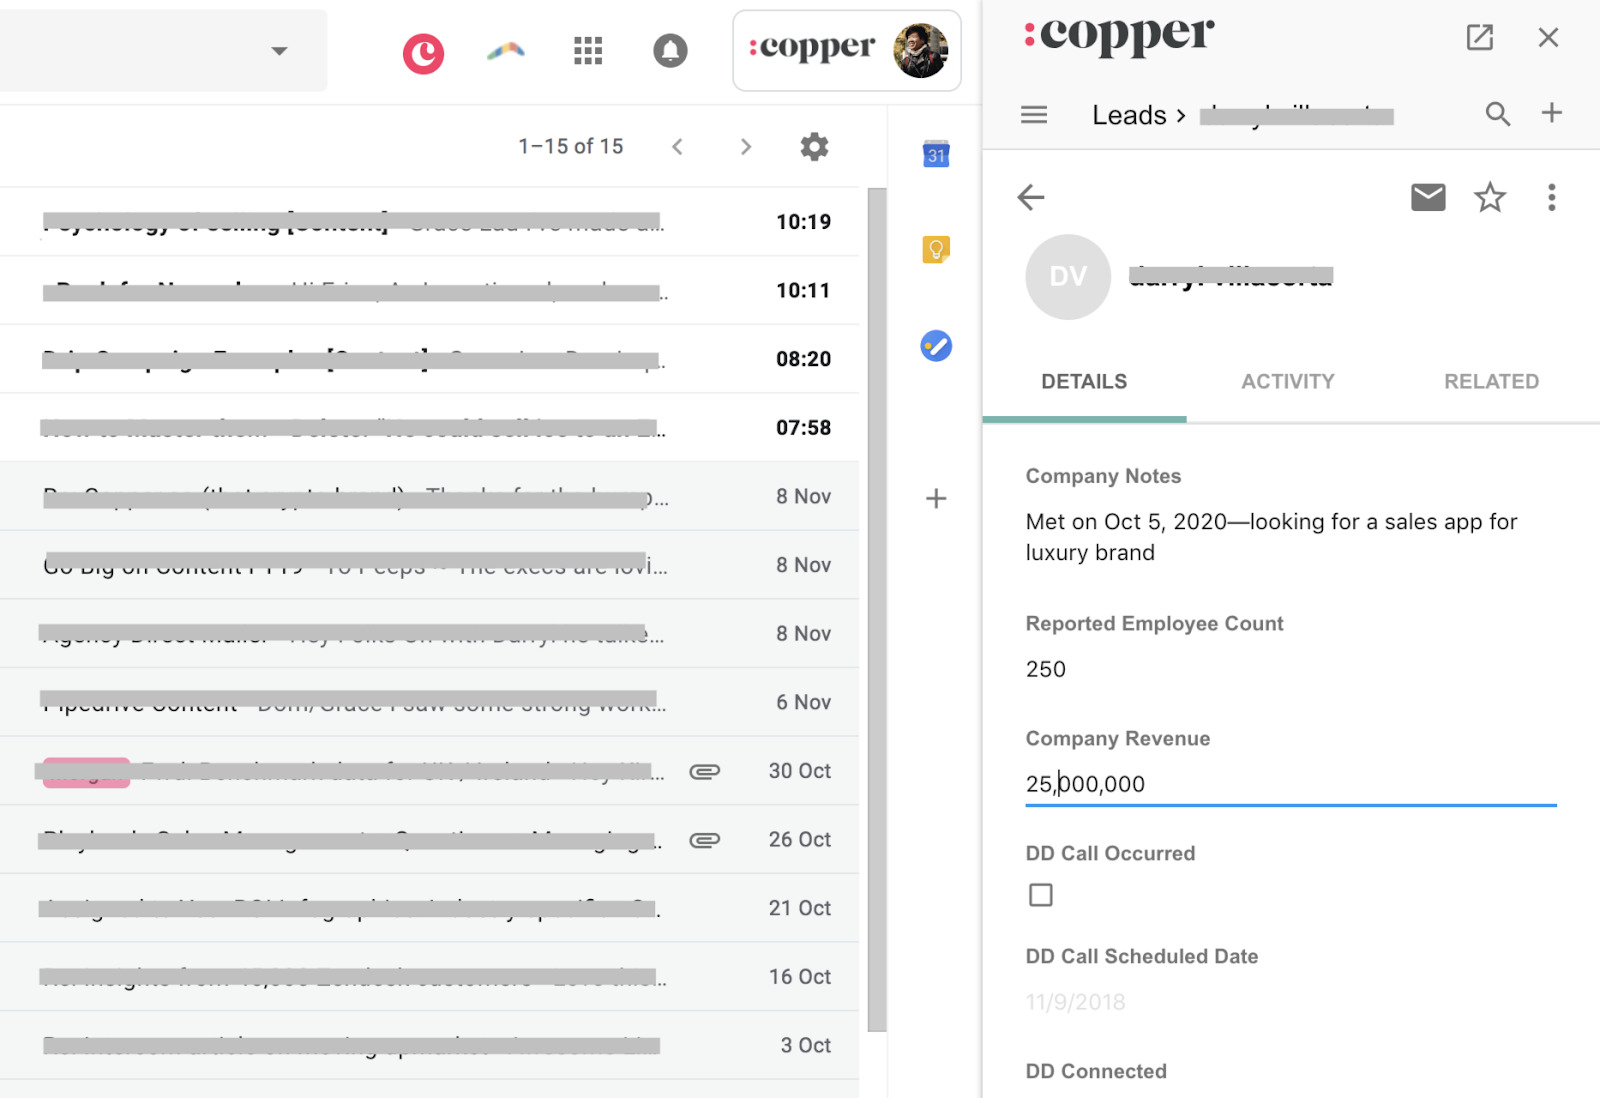 copper crm allows you to make notes under each lead's profile